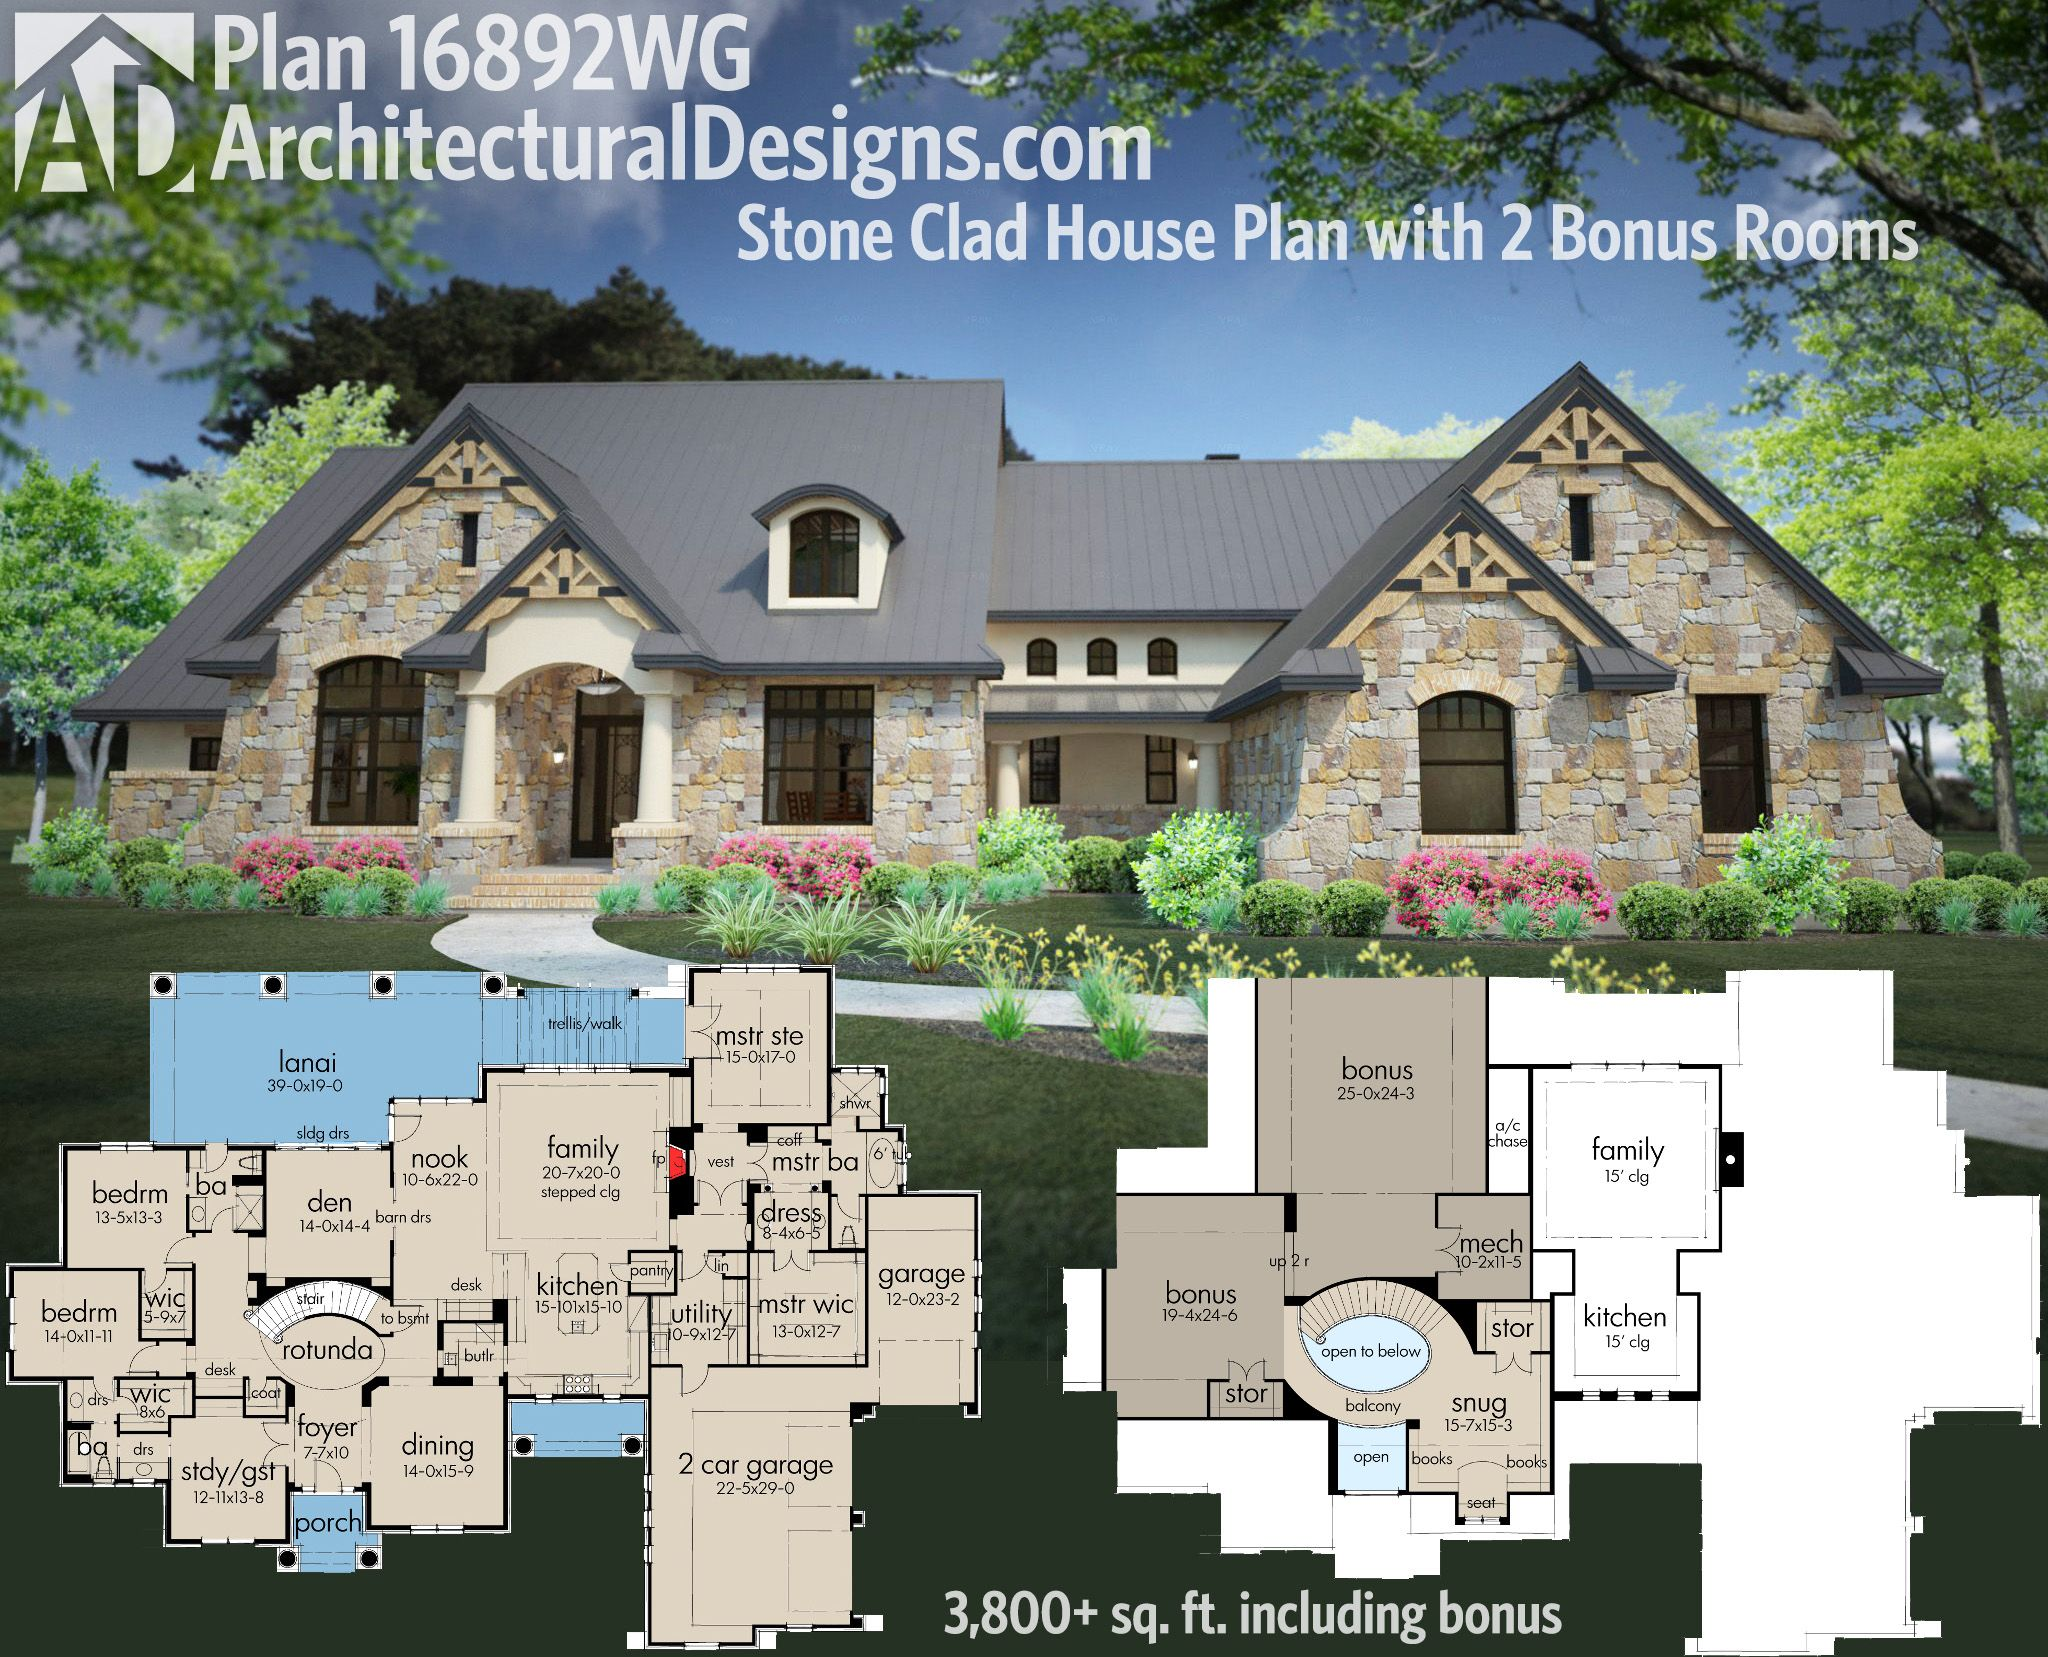 Plan 16892wg stone clad house plan with 2 bonus rooms for House plans with bonus room